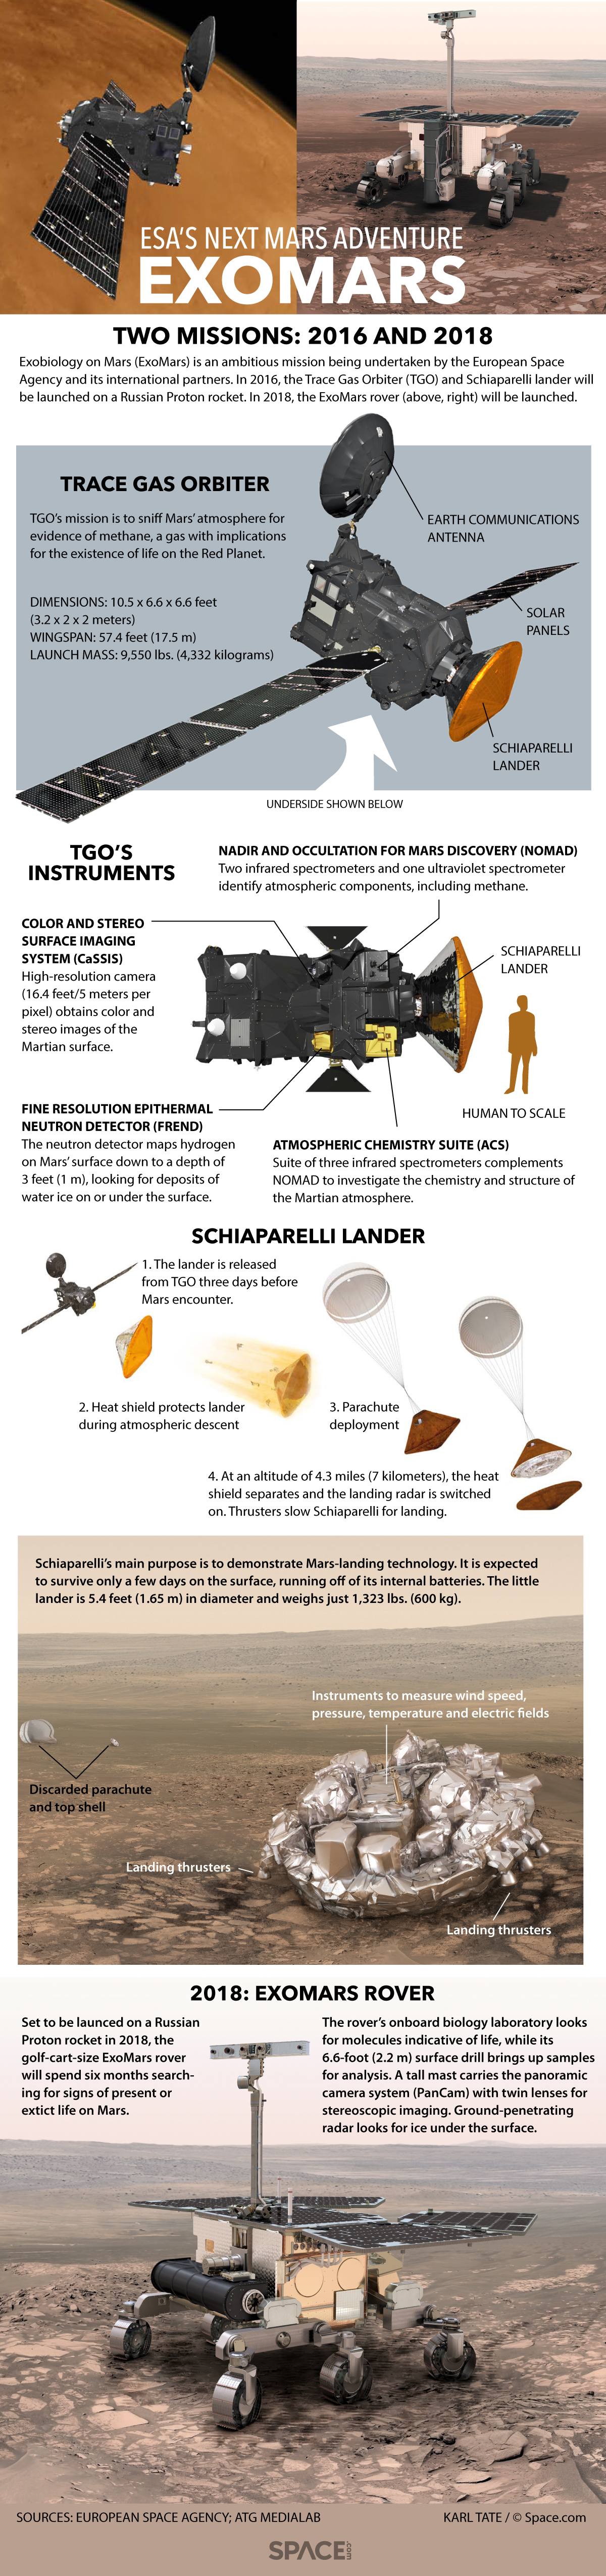 How ESA's ExoMars Missions Work (Infographic)